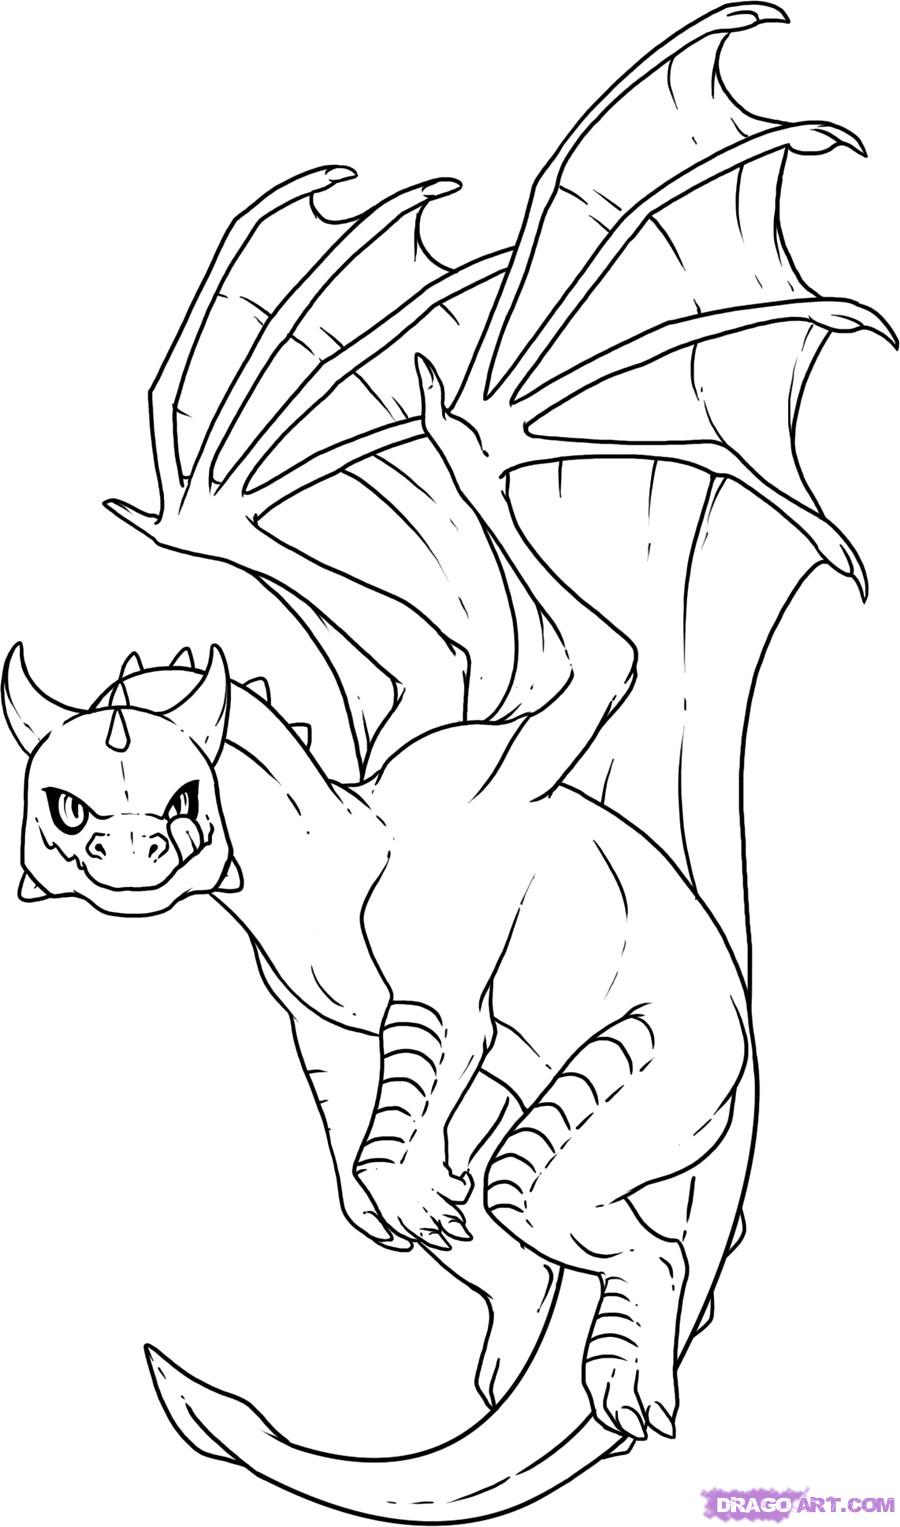 900x1527 How To Draw Chinese Dragon Easy Archives